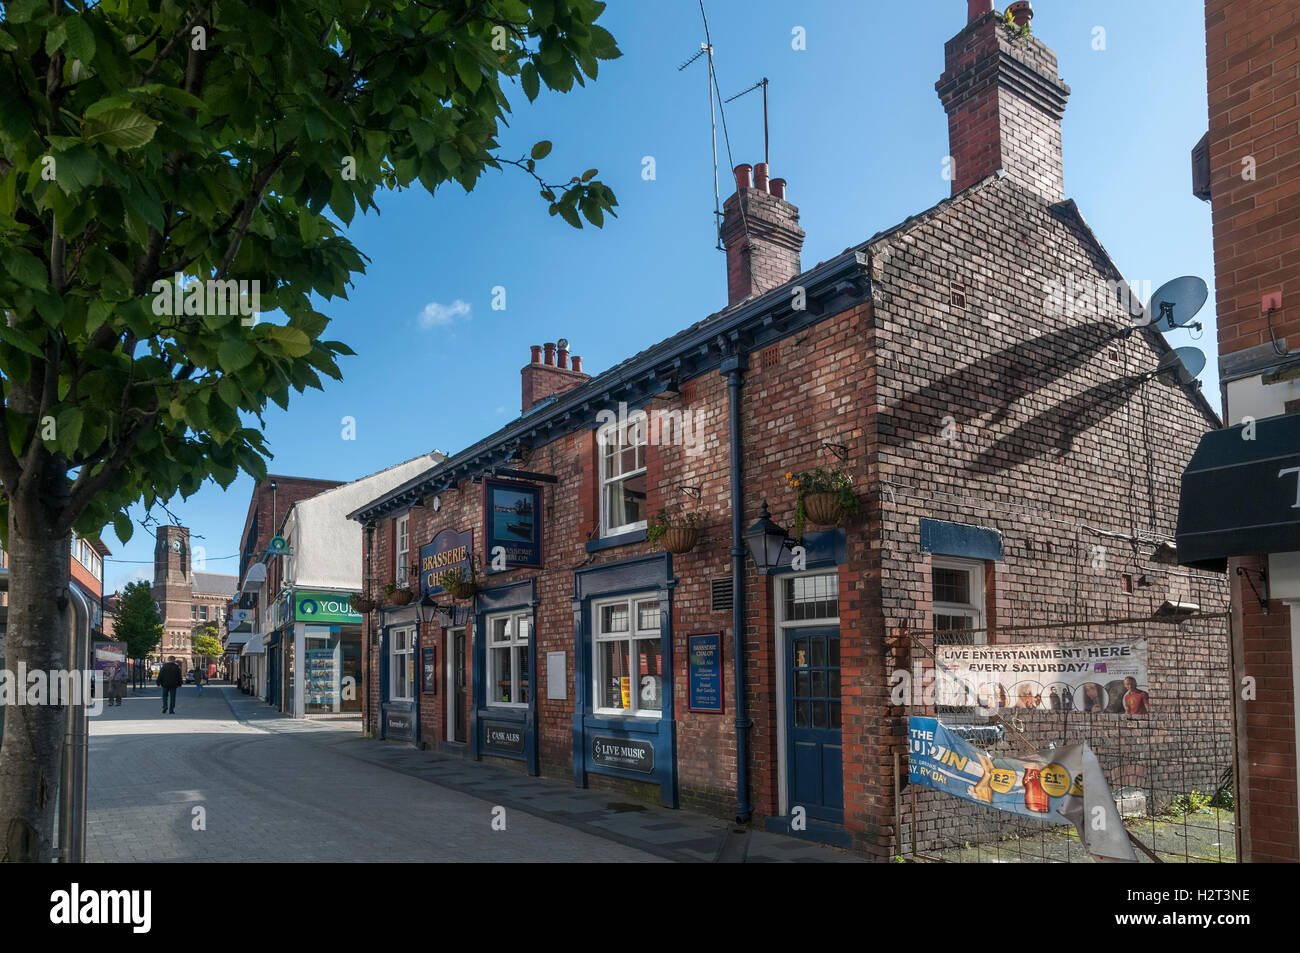 The Brasserie Chalon public house in St Helens town centre. Merseyside North West England. - Stock Image